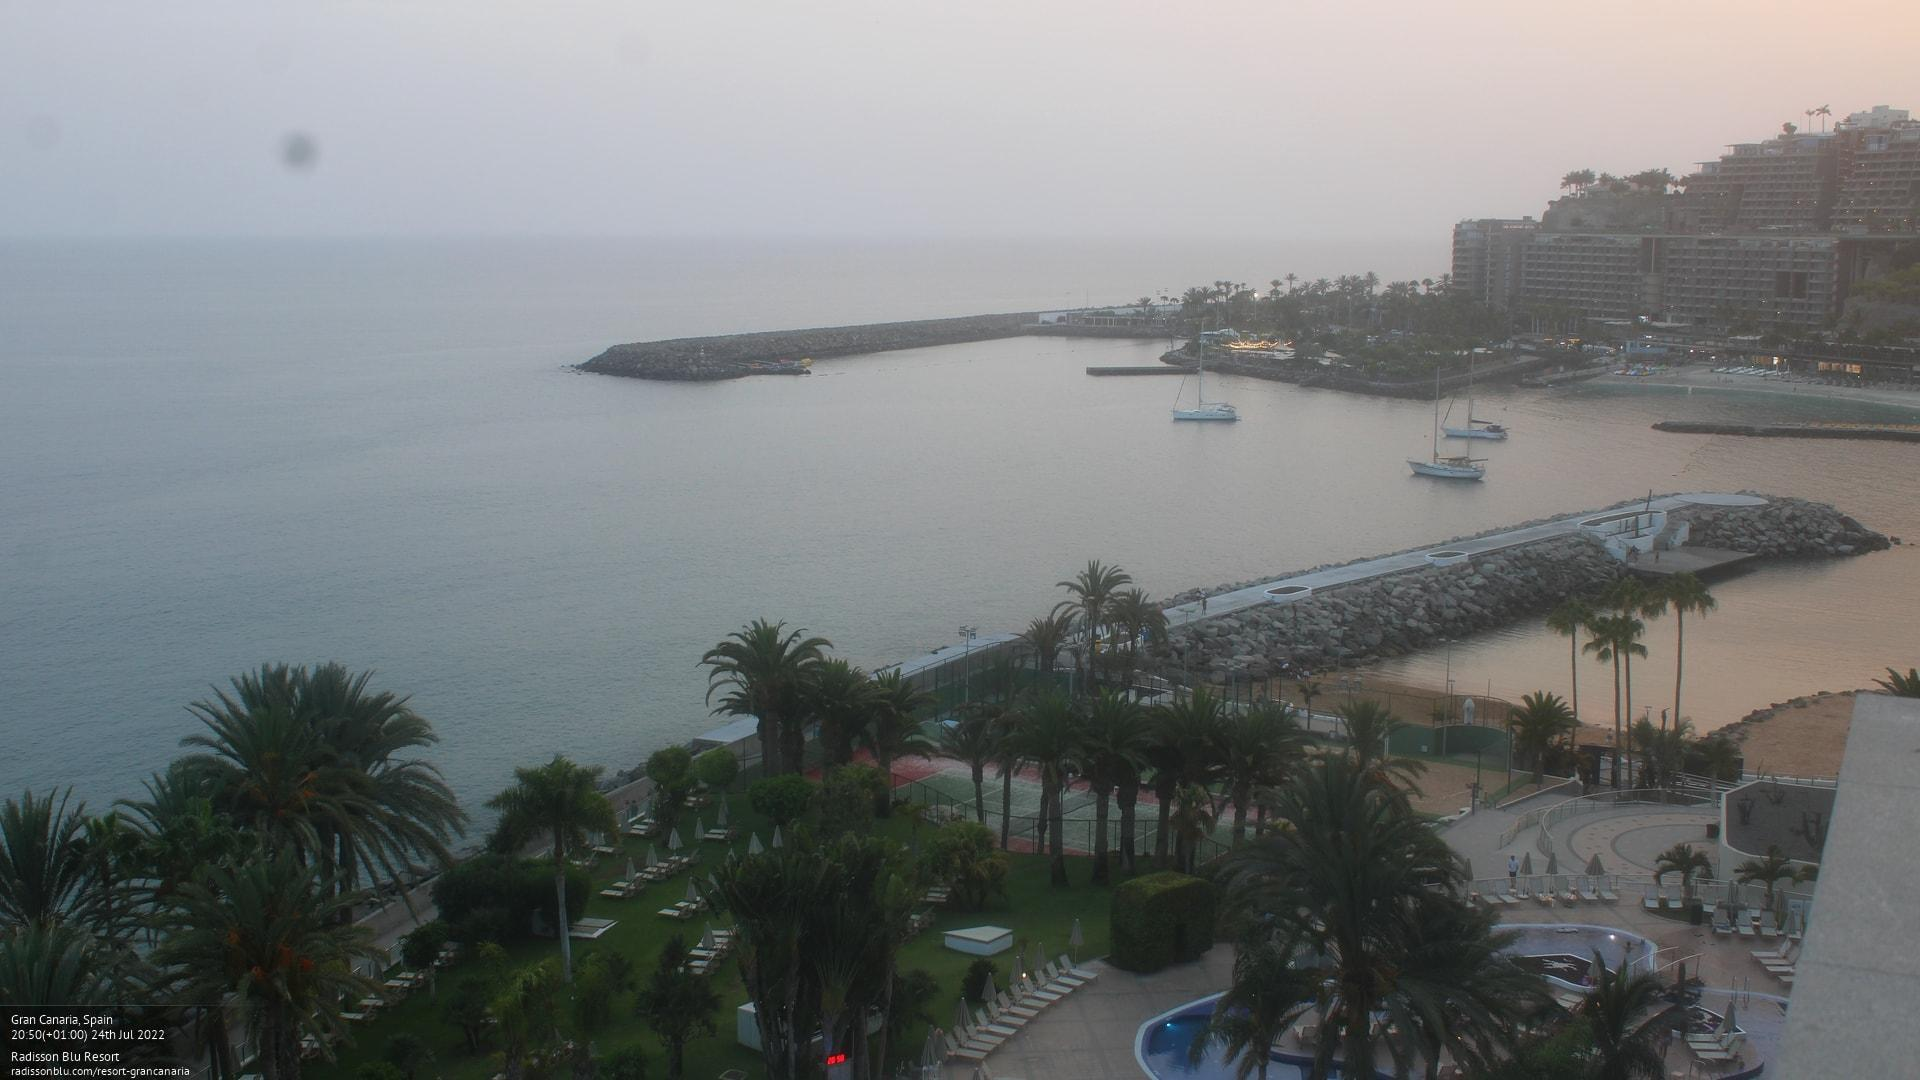 Webcam Valsequillo de Gran Canaria: Radisson Blu Resort